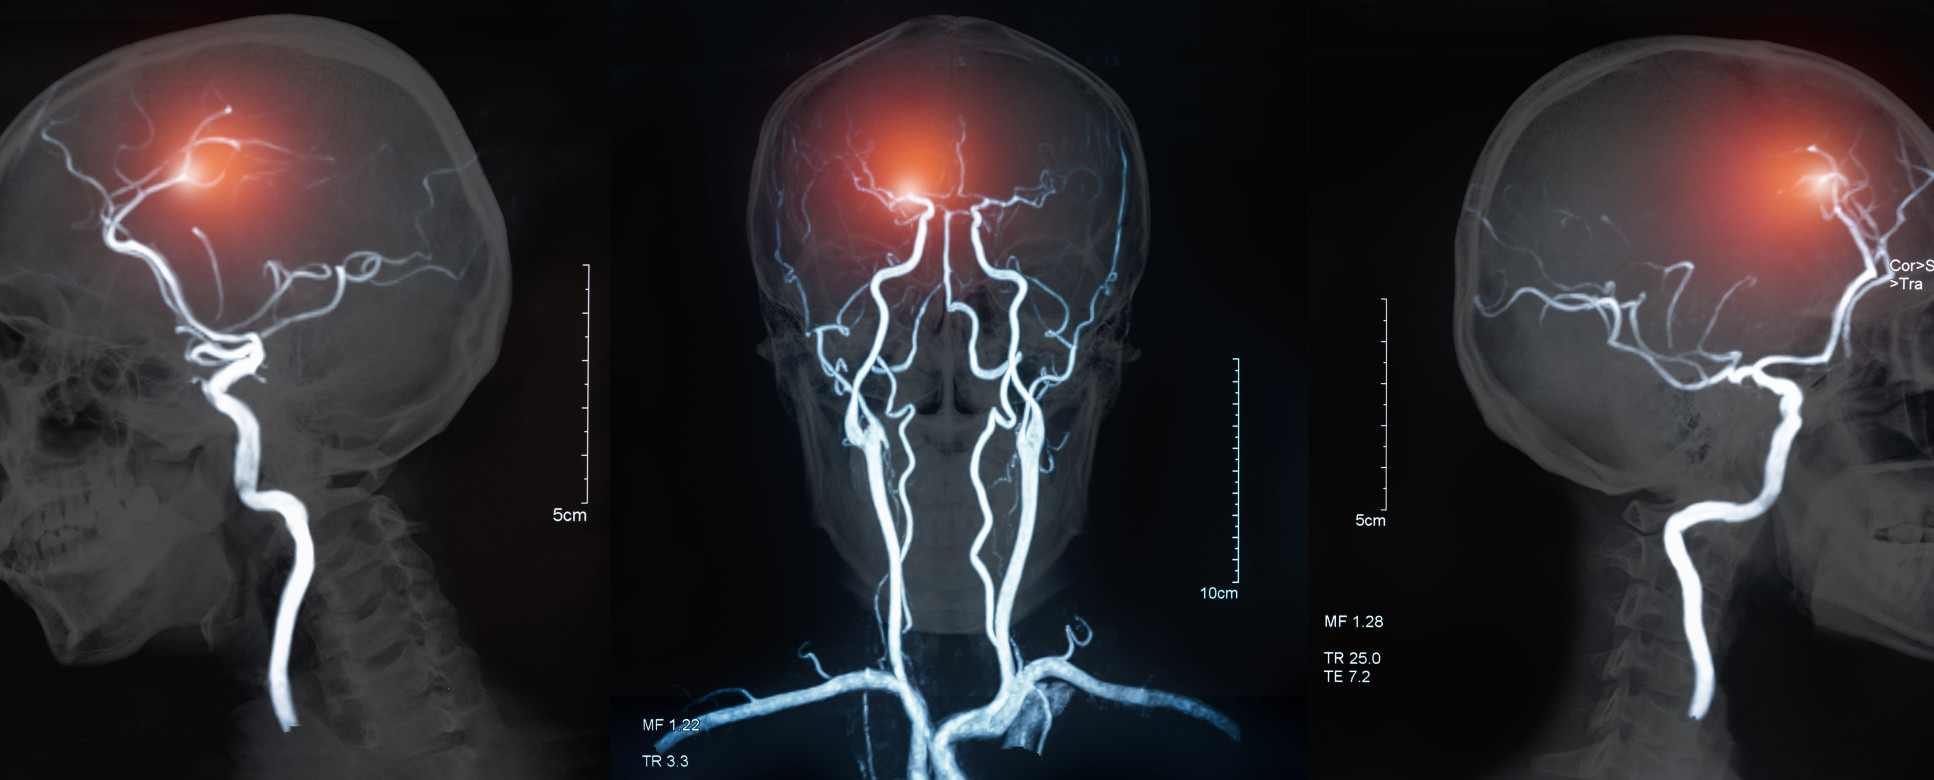 MRI of the blood vessels in the brain and cerebrovascular disease or or hemorrhagic stroke. brain stroke x-ray image.